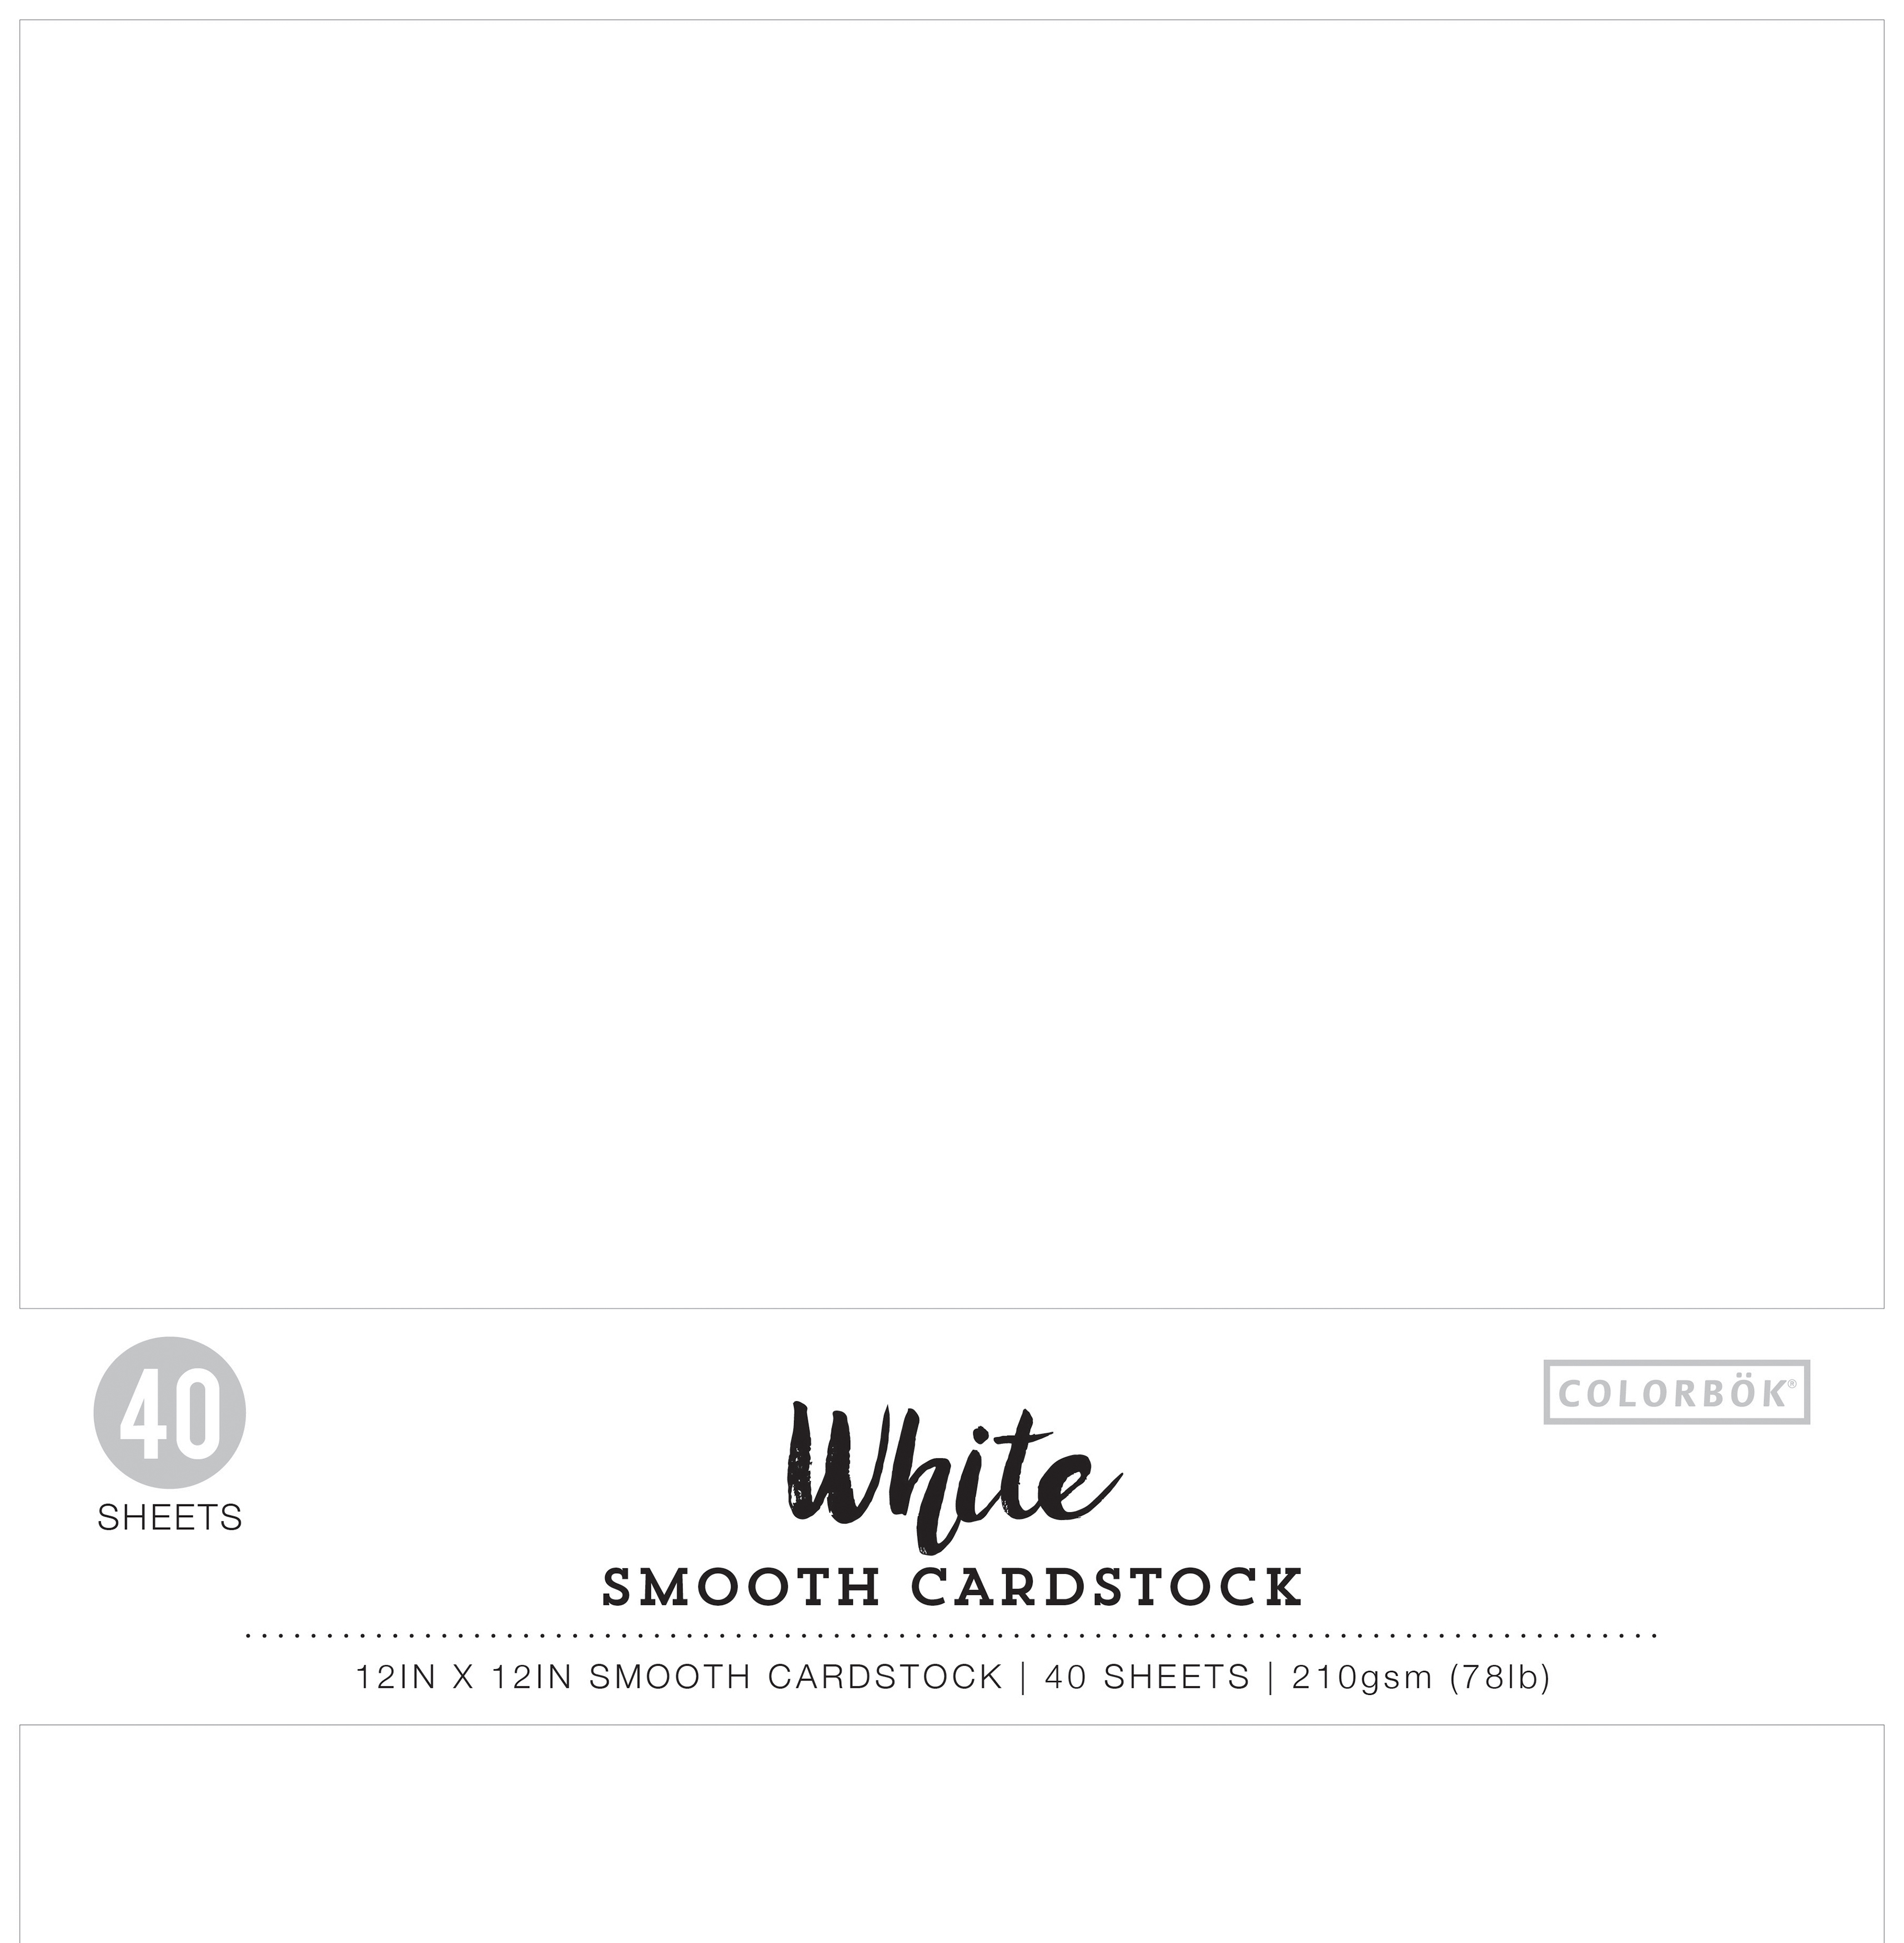 Colorbok 78lb Smooth Cardstock 12X12 40/Pkg-White